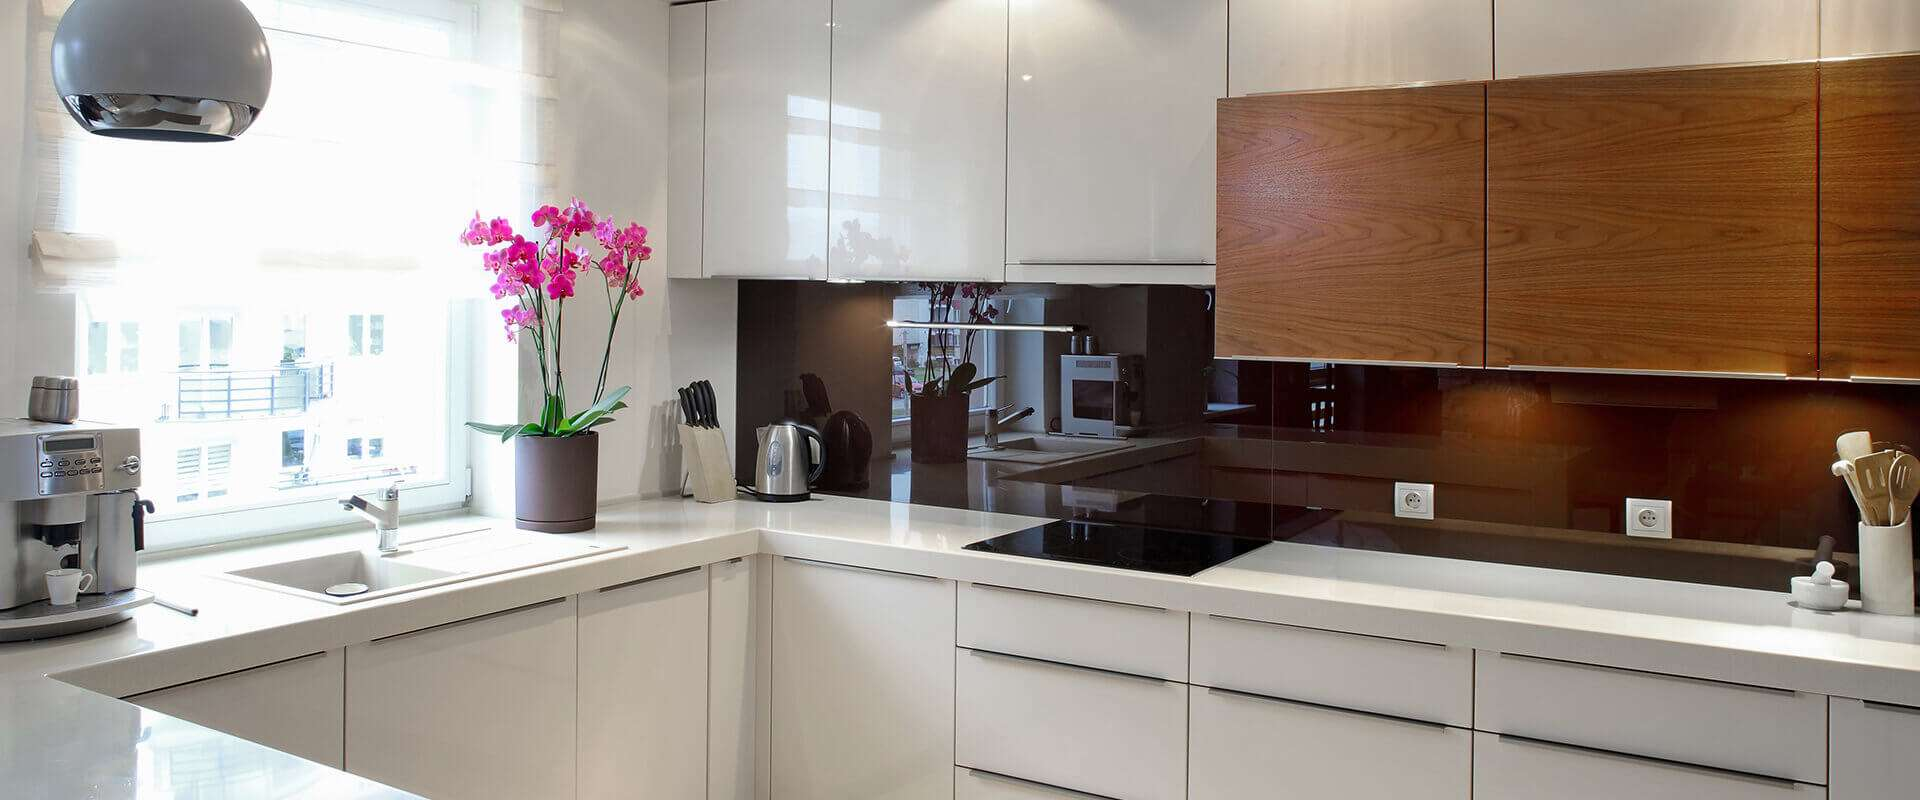 Domestic cleaning kitchen | Cleaners of London